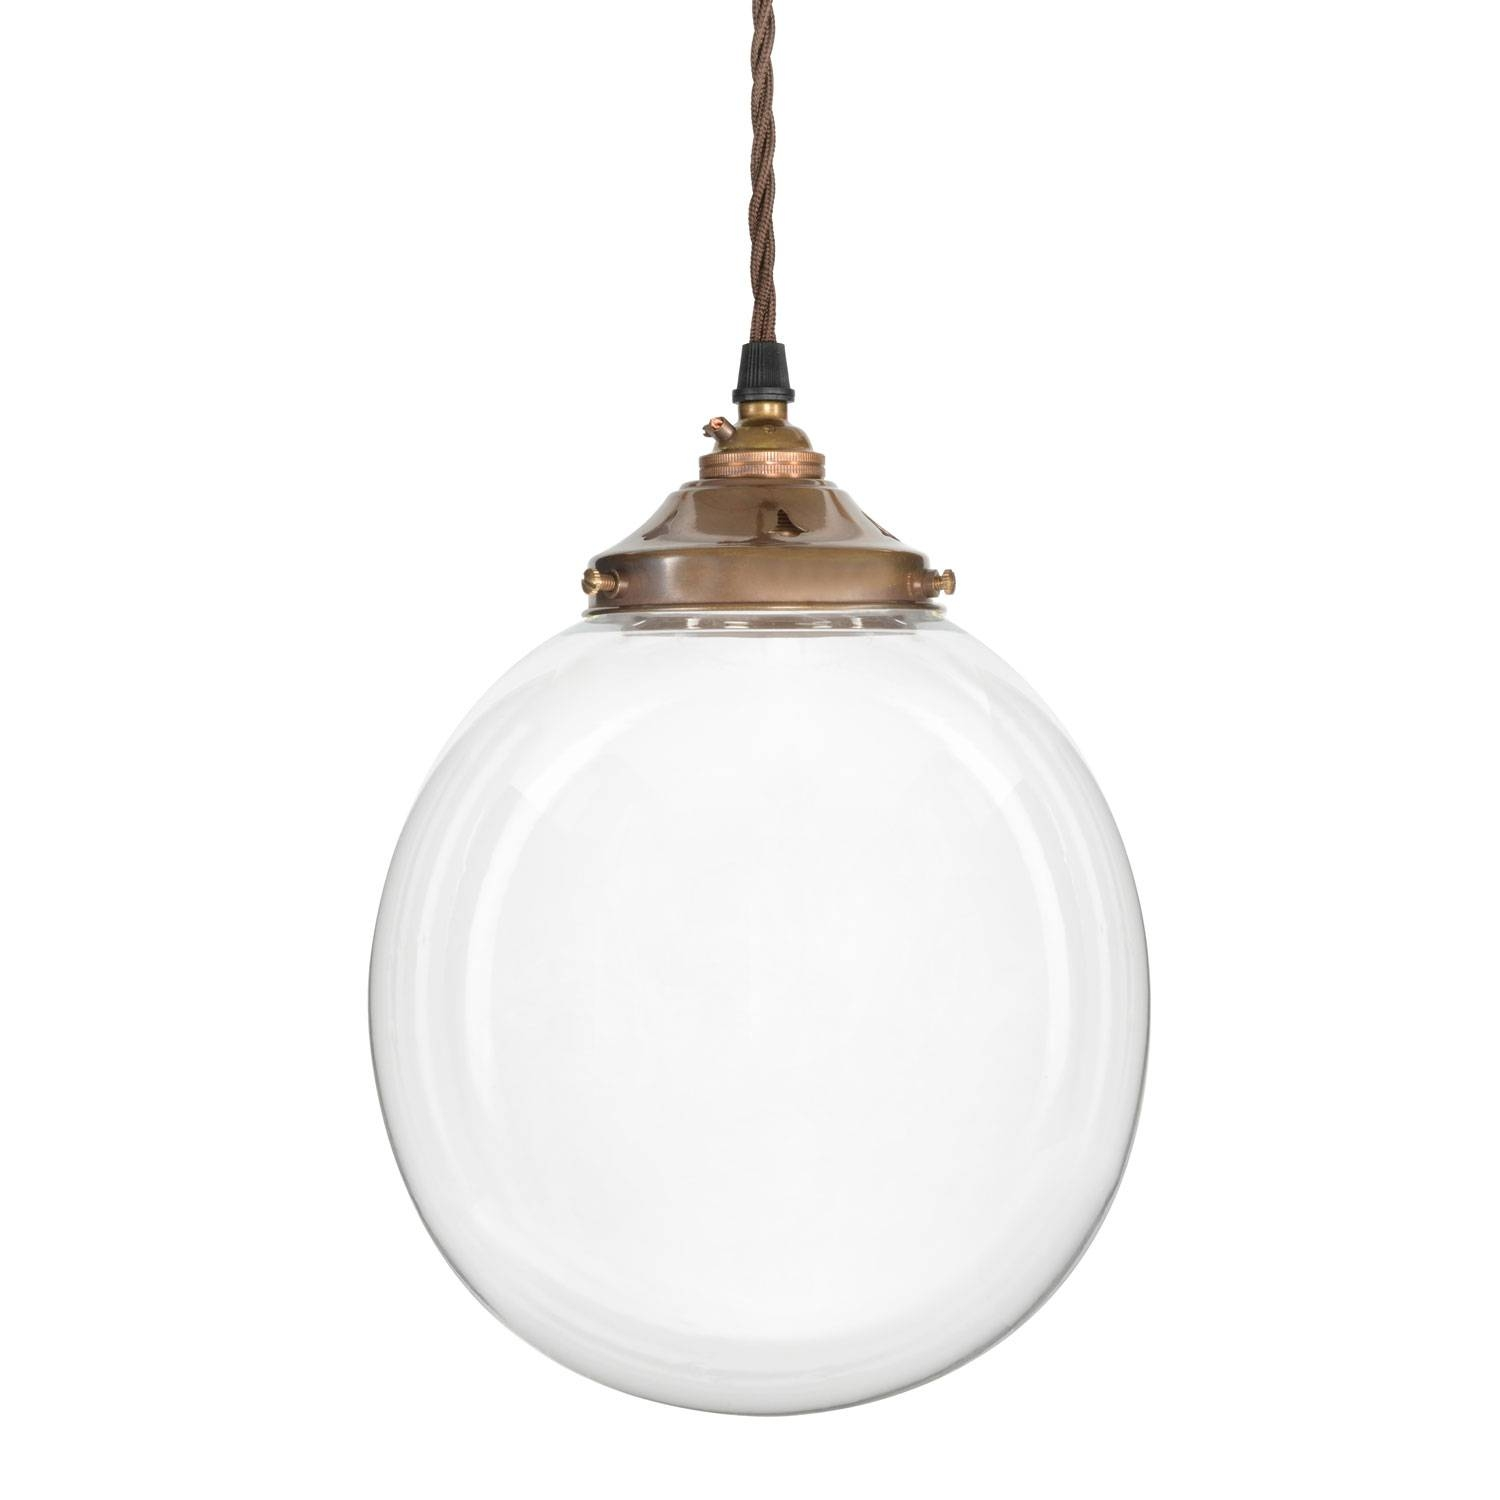 Antique Glass Globe Pendant Light — All About Home Design : Glass In Globe Pendant Light Fixtures (View 11 of 15)